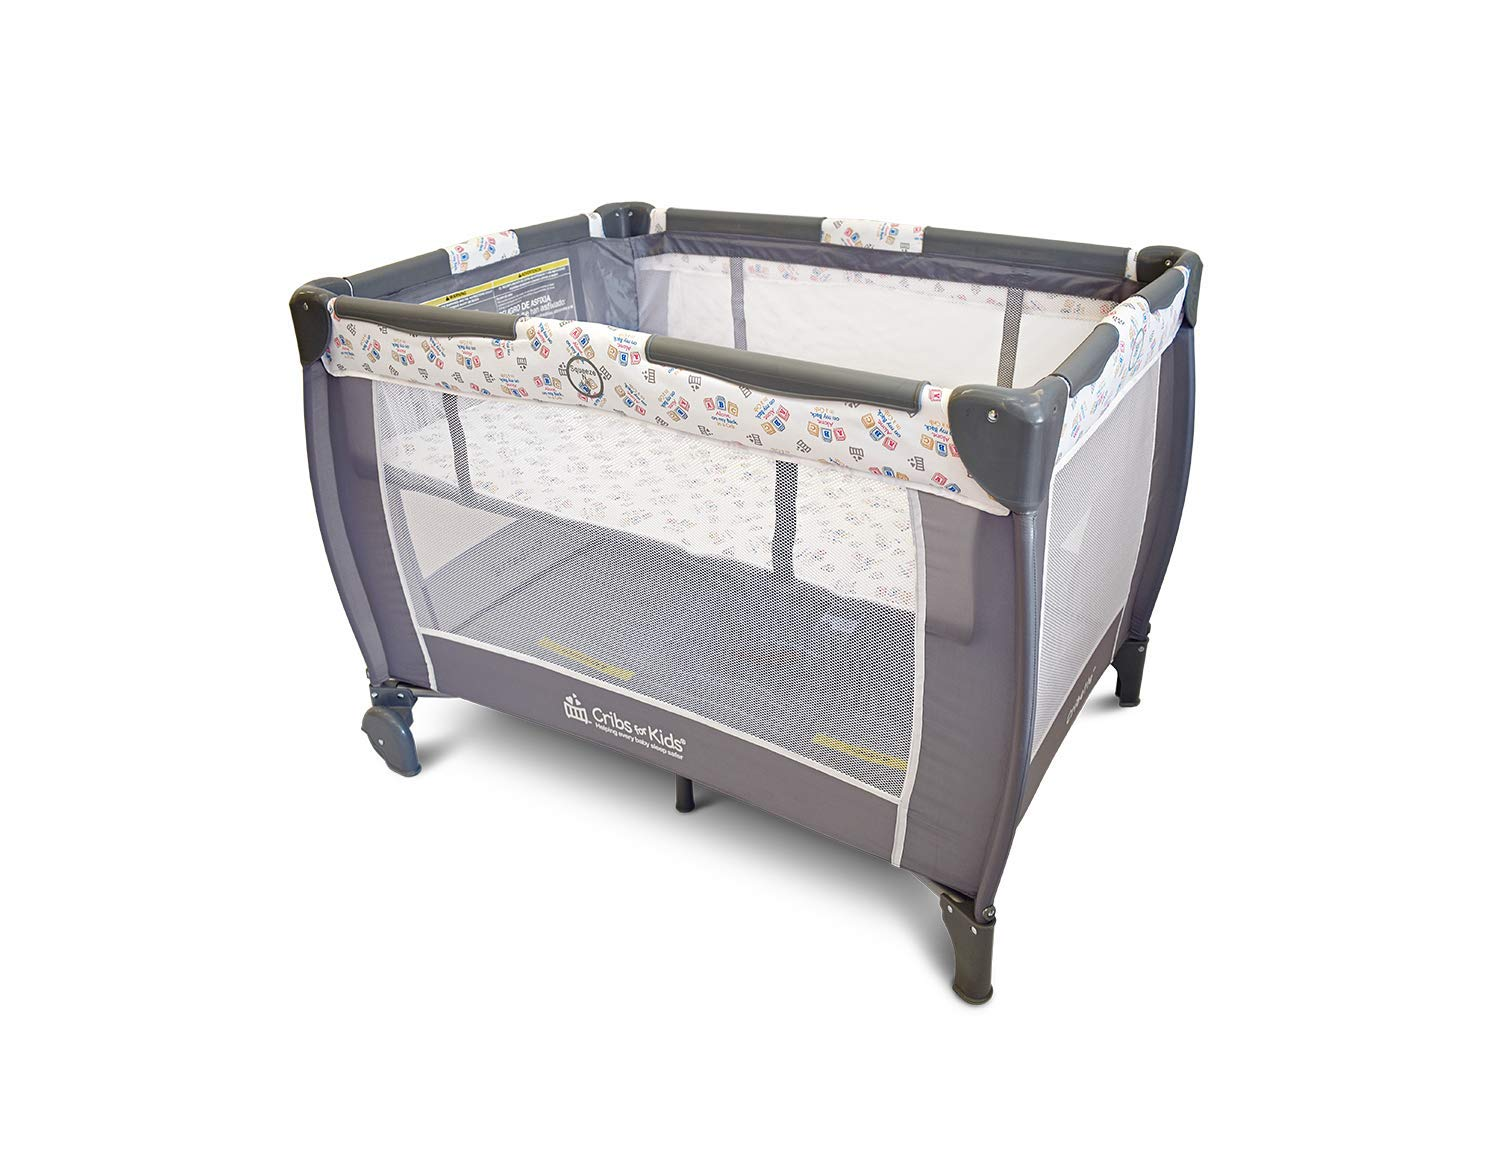 Cribette Portable Crib with Safe Sleep Message by Cribs for Kids